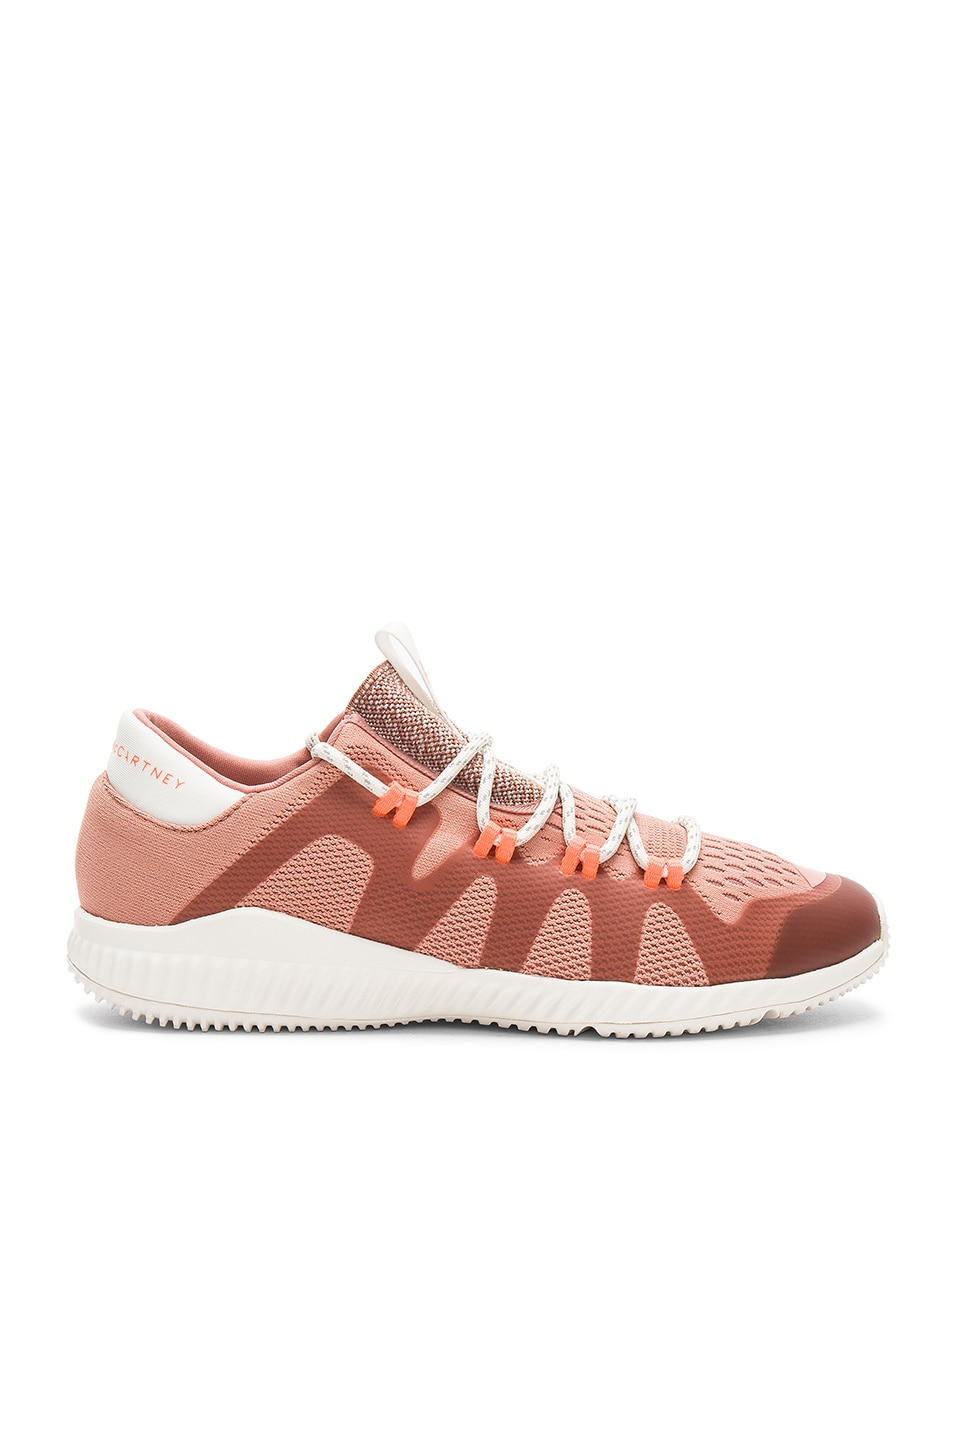 Crazy Train Pro Sneaker by adidas by Stella McCartney